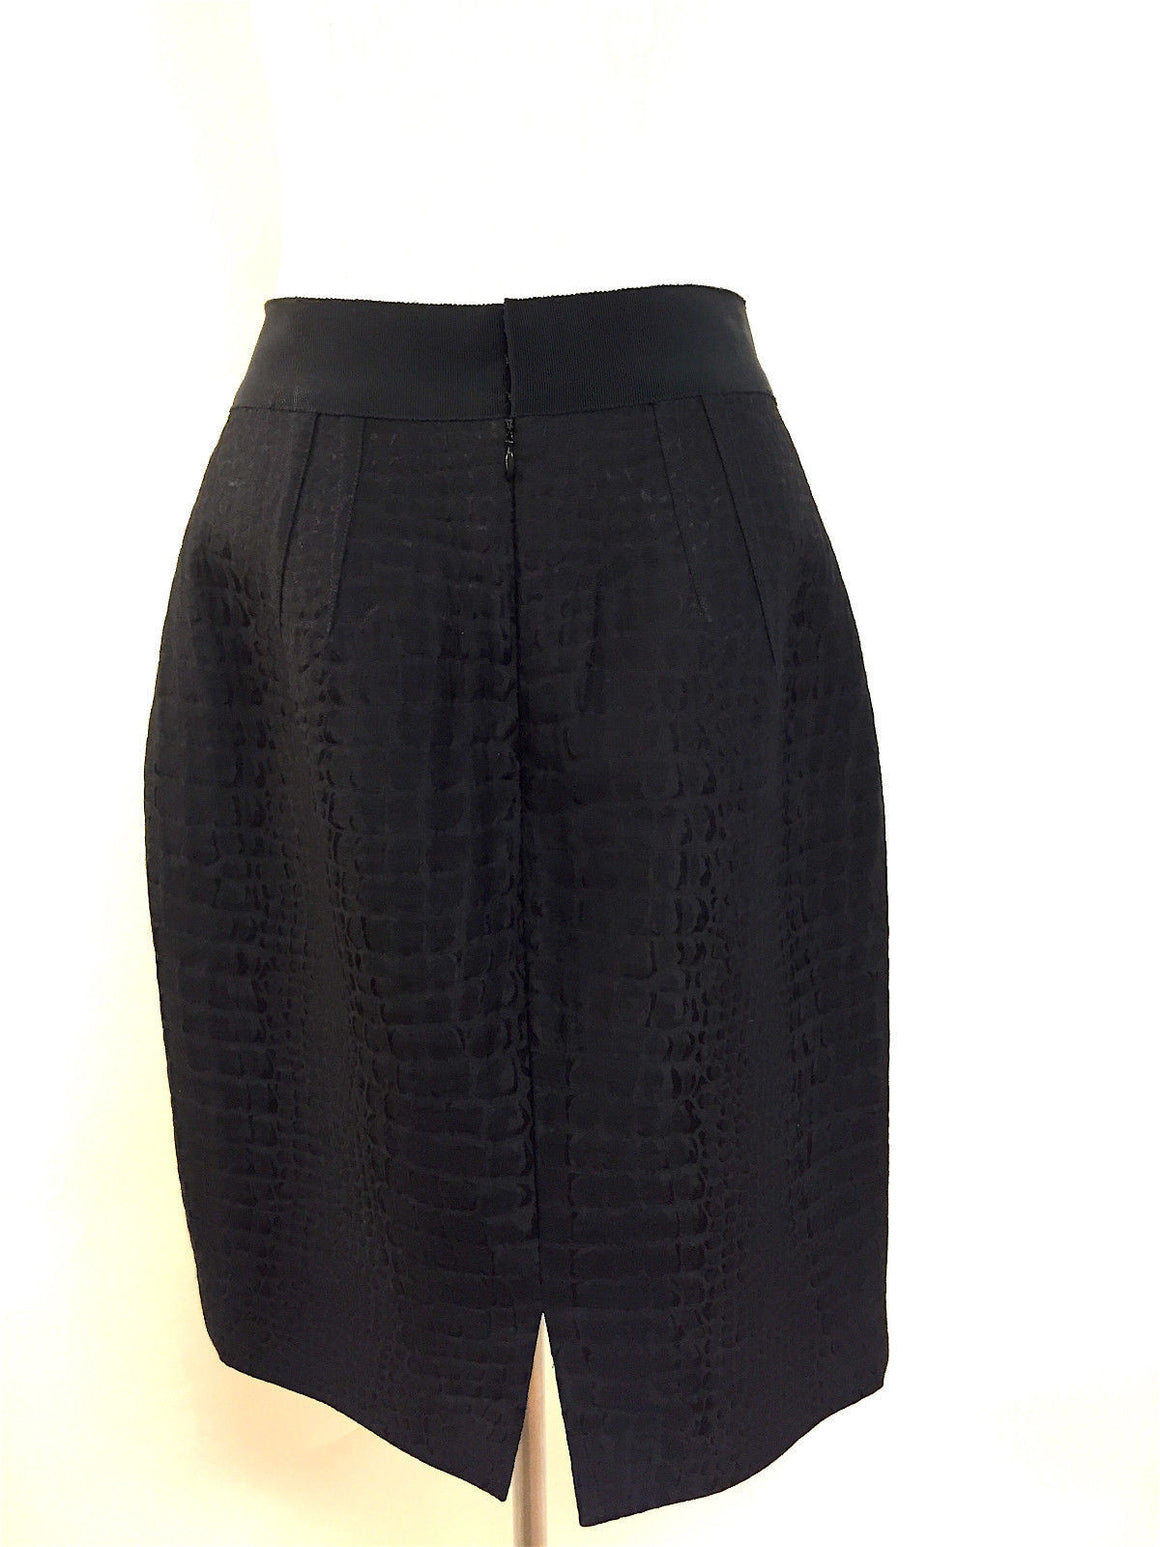 bisbiz.com GIAMBATTISTA VALLI Black Reptile-Patterned Wool/Silk Dress Pencil Skirt Size: 46/12 - Bis Luxury Resale